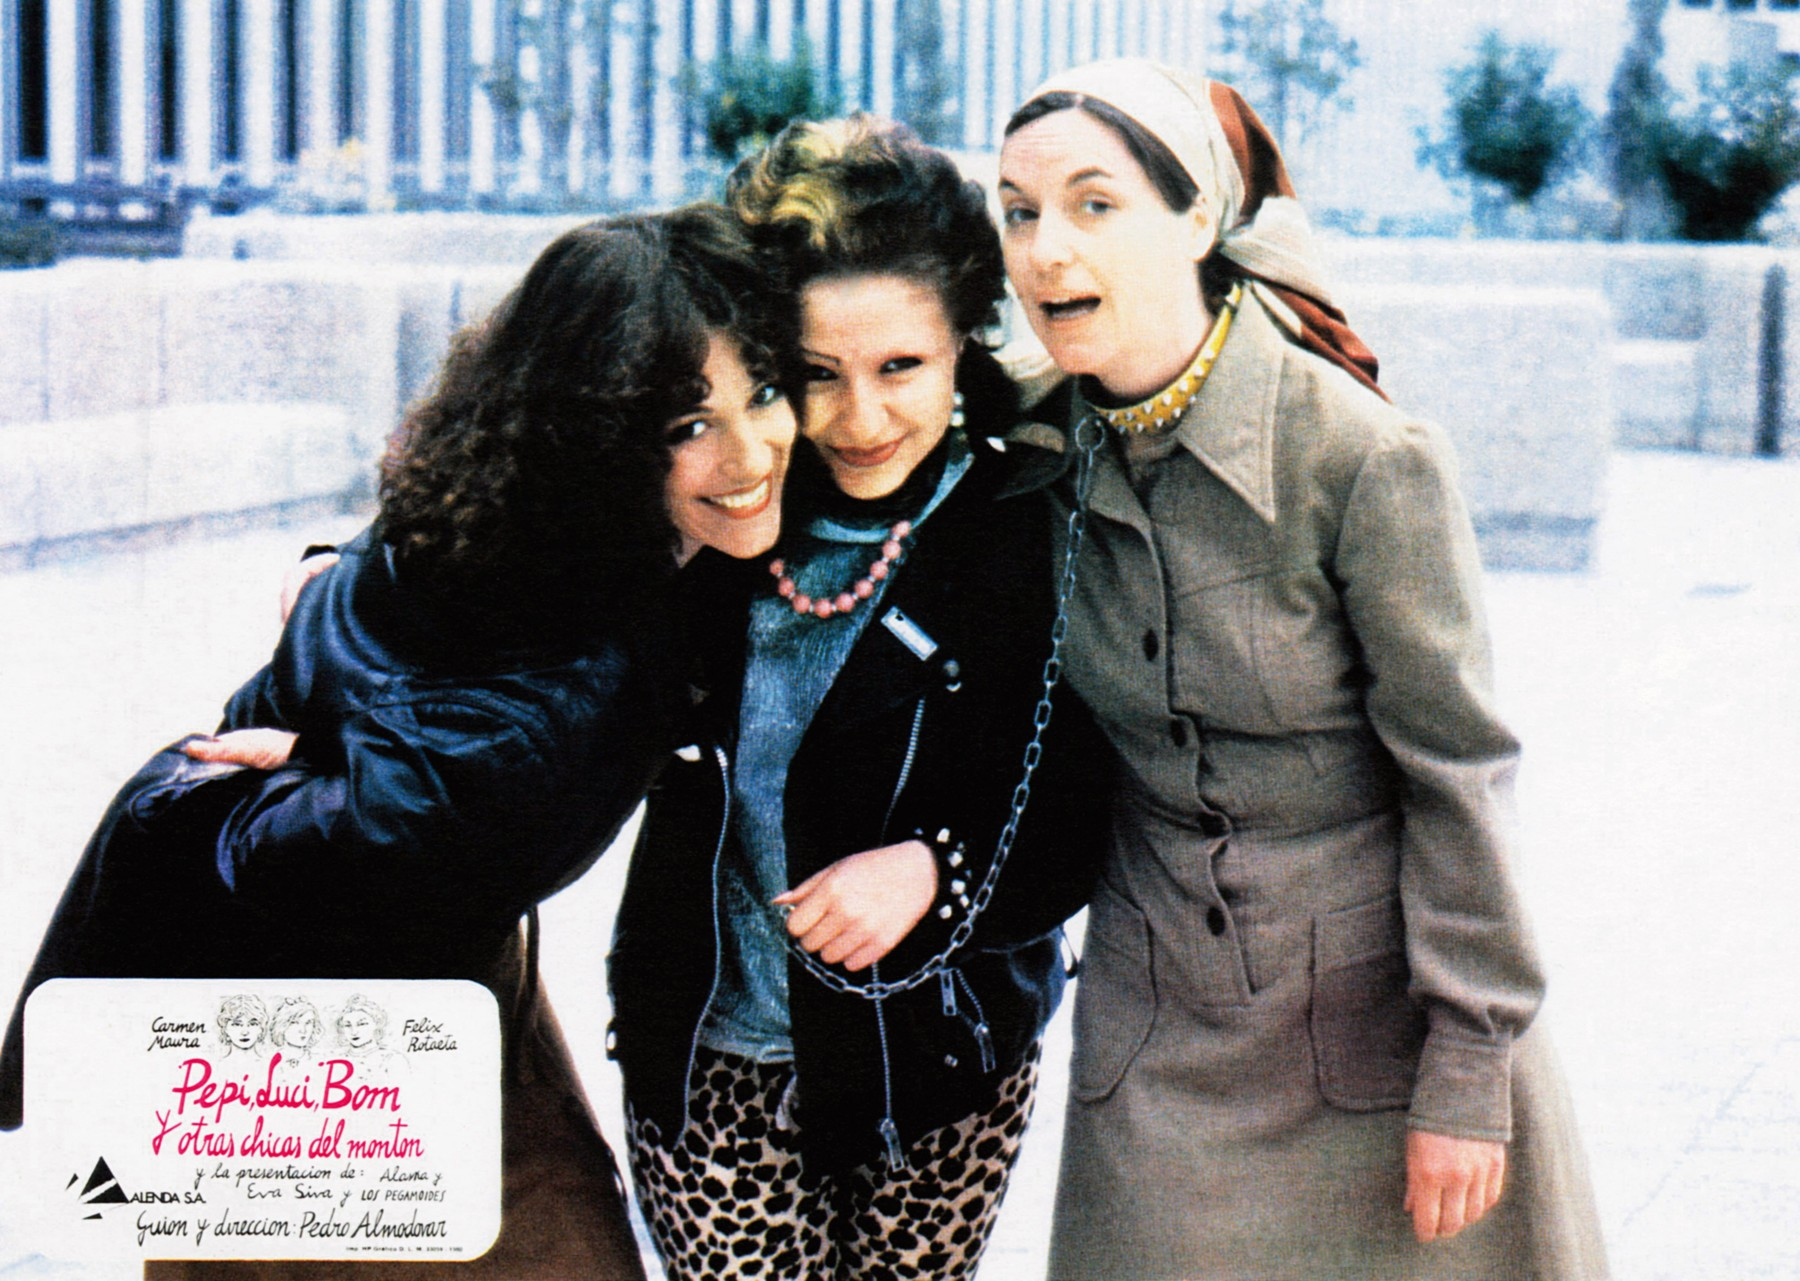 PEPI, LUCI, BOM AND OTHER GIRLS LIKE MOM, (aka PEPI, LUCI BOM Y OTRAS CHICAS DEL MONTON), Carmen Maura (left), 1980,, Image: 468932349, License: Rights-managed, Restrictions: Cinevista/courtesy Everett Collection, Model Release: no, Credit line: Profimedia, Everett